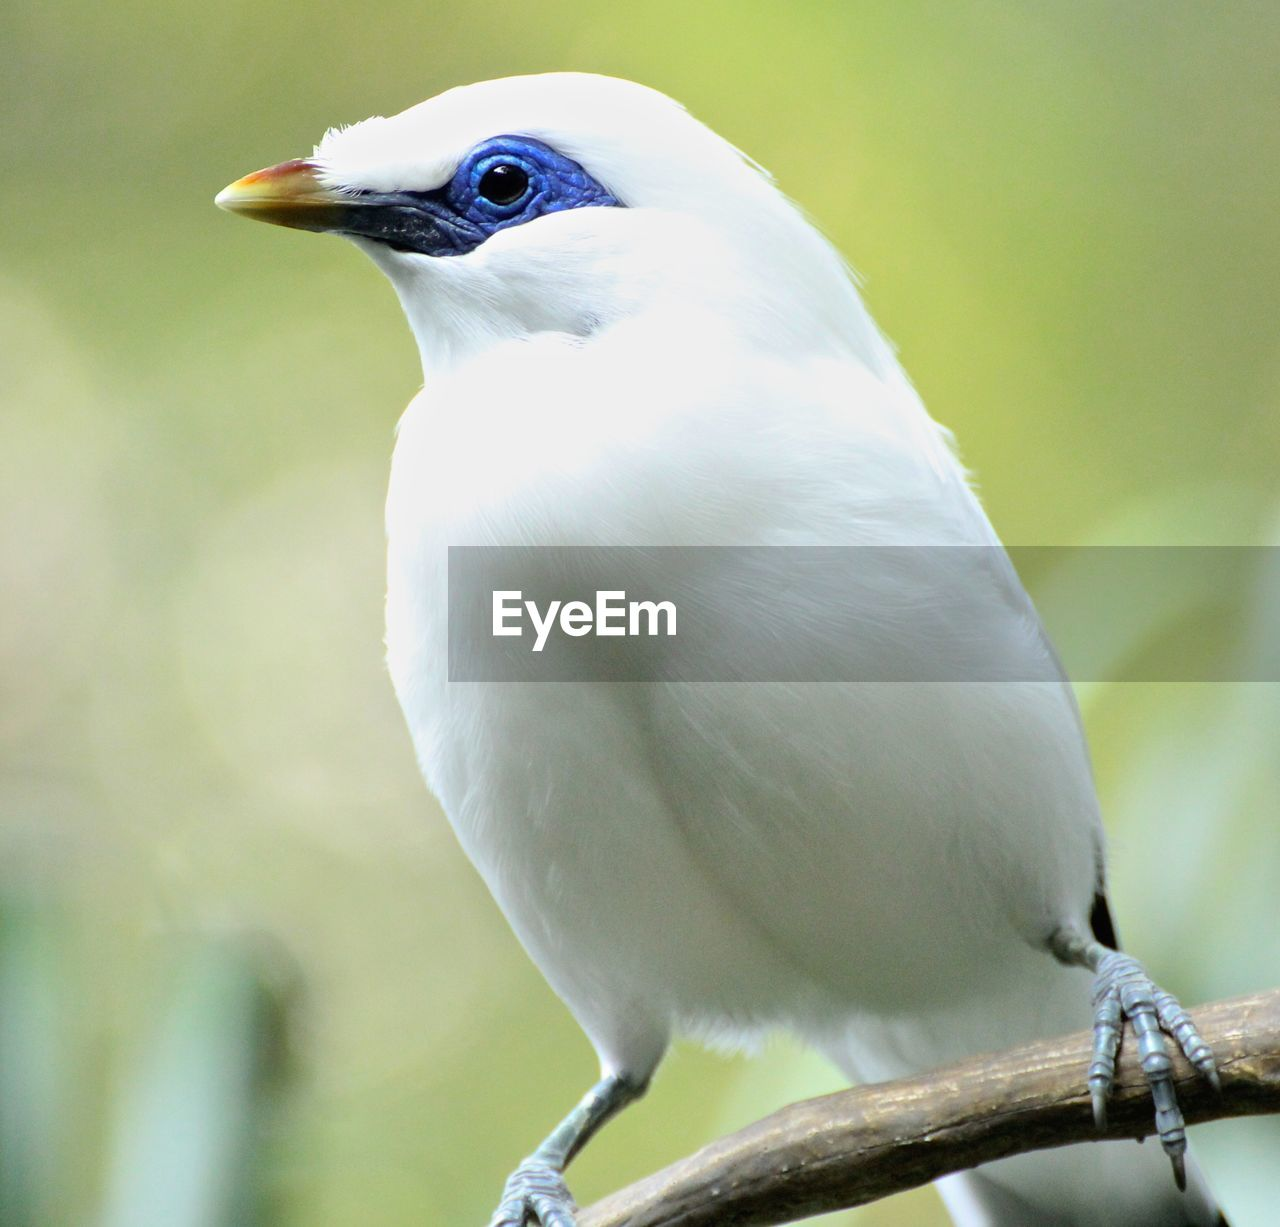 bird, animal themes, vertebrate, animal, one animal, animal wildlife, animals in the wild, perching, focus on foreground, close-up, white color, no people, tree, day, nature, branch, looking, outdoors, plant, looking away, animal eye